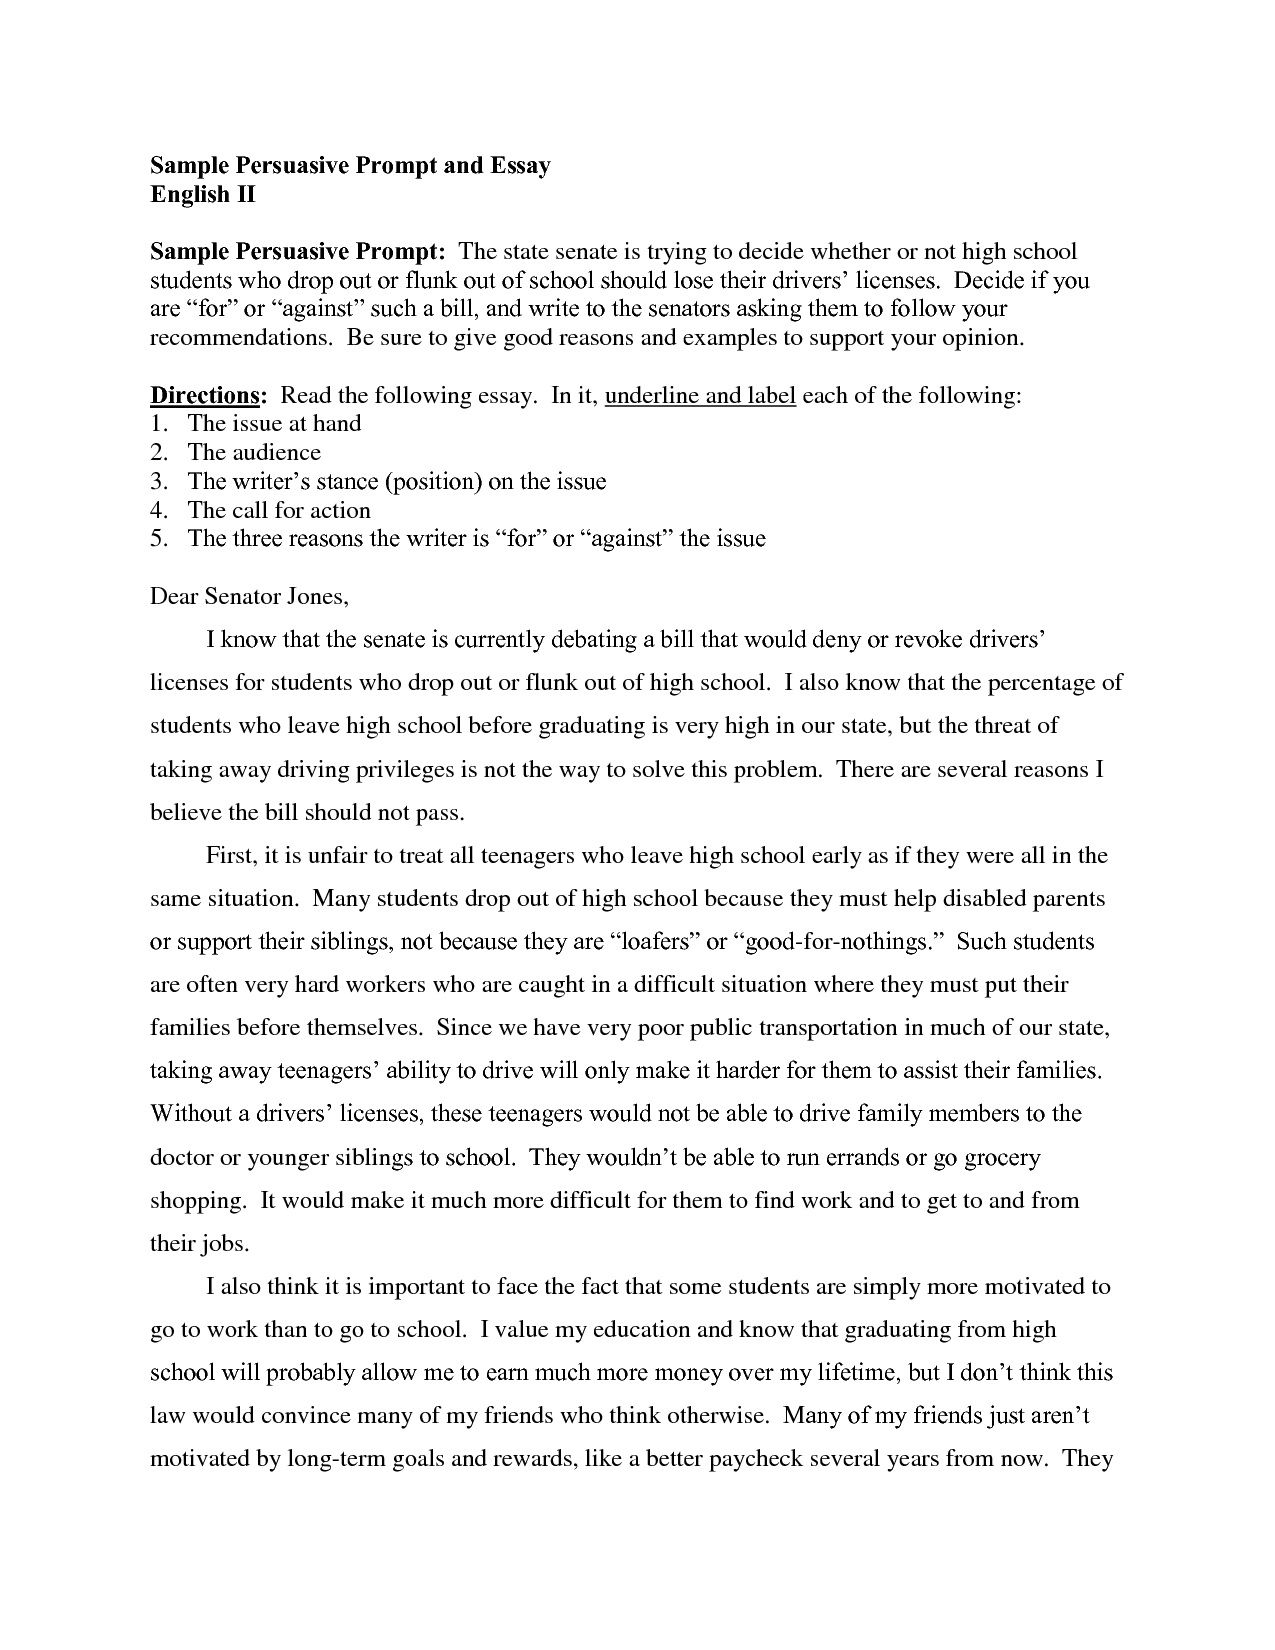 Sample Argumentative Essay For High School Students